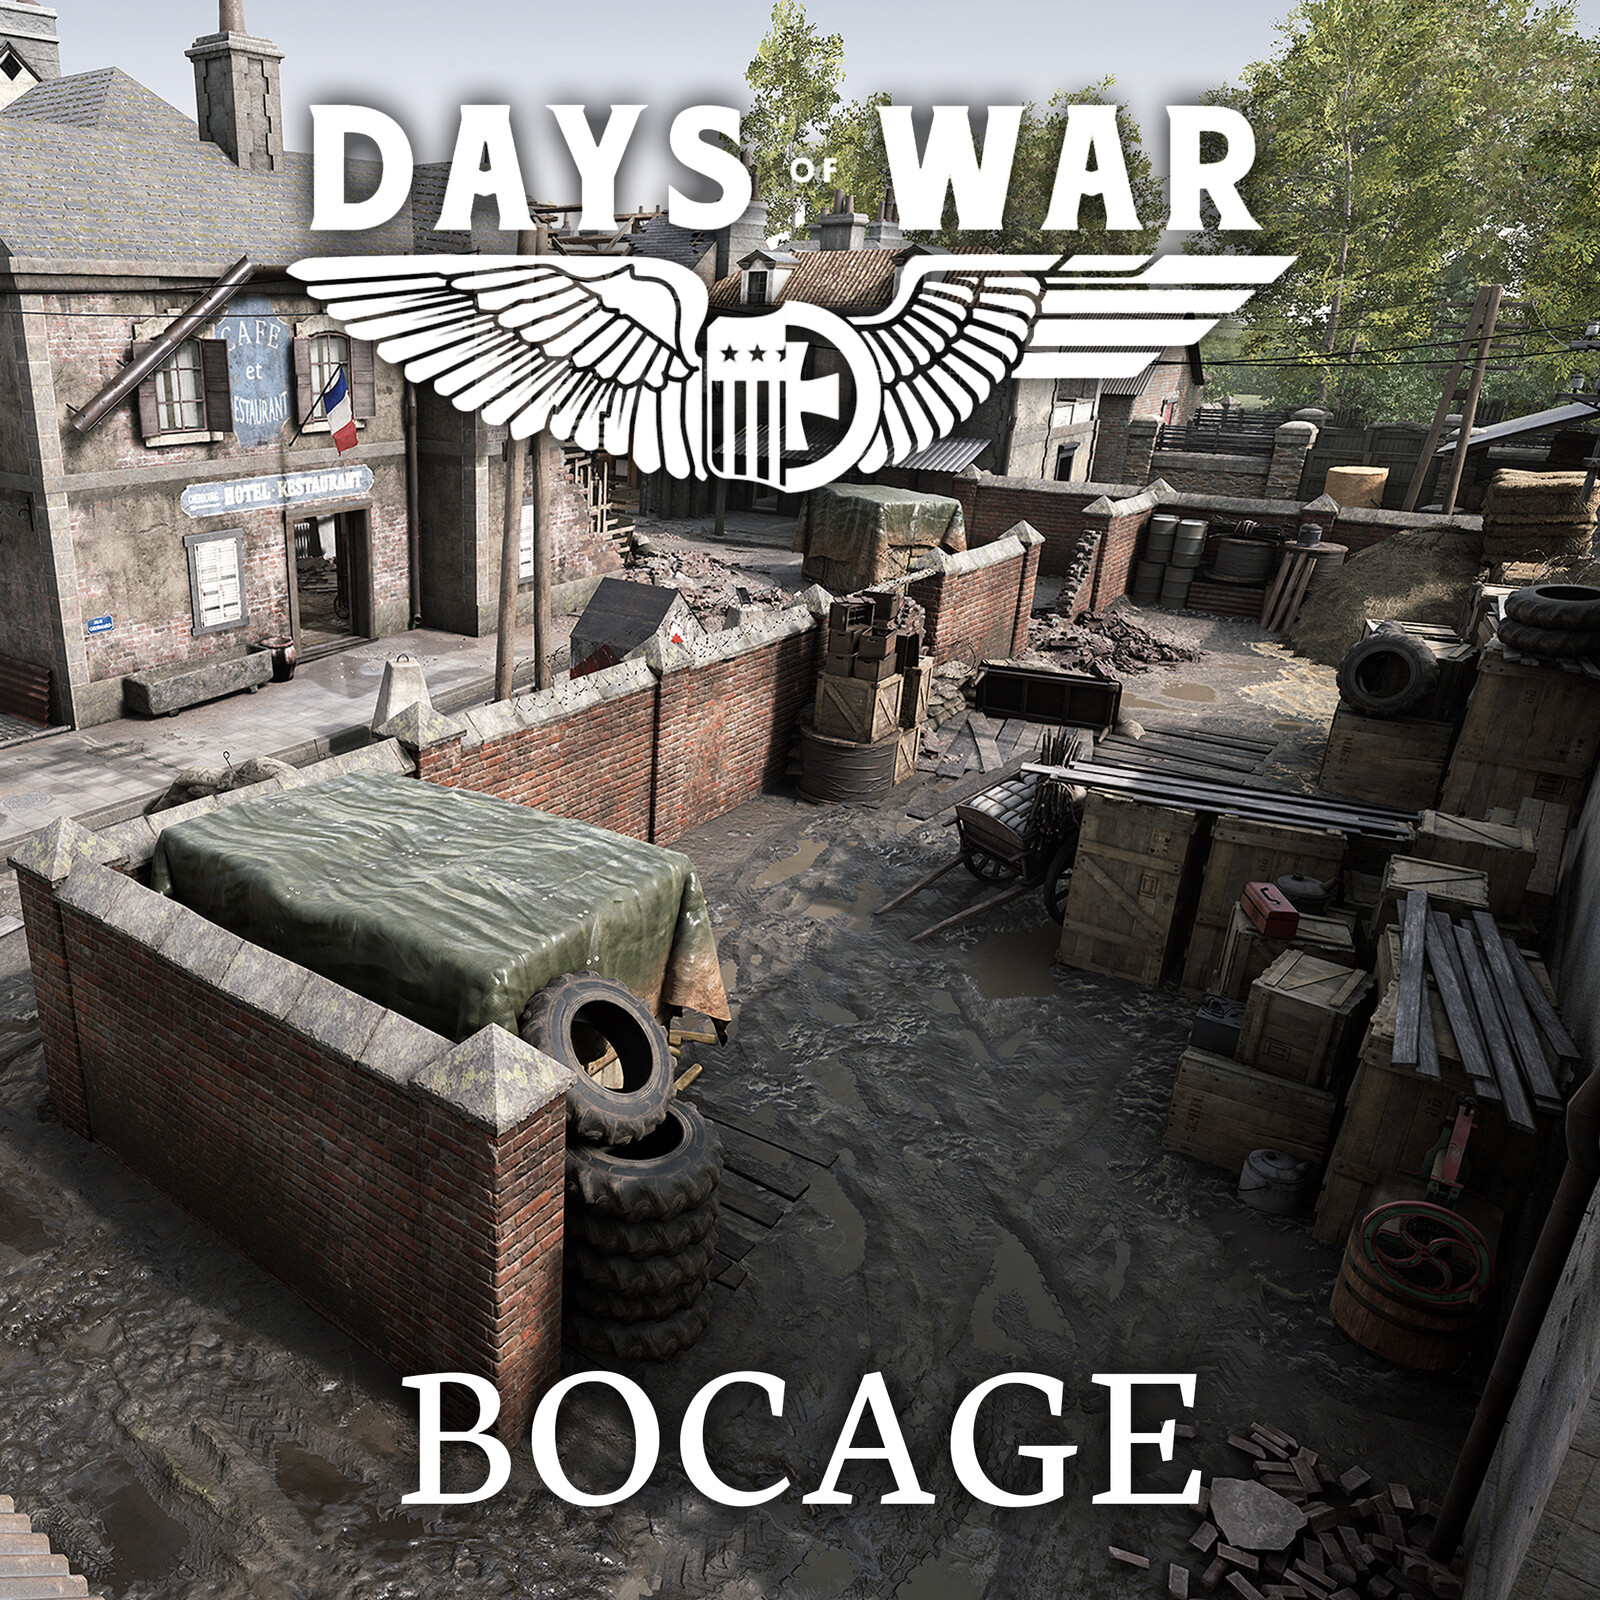 Days of War - Bocage